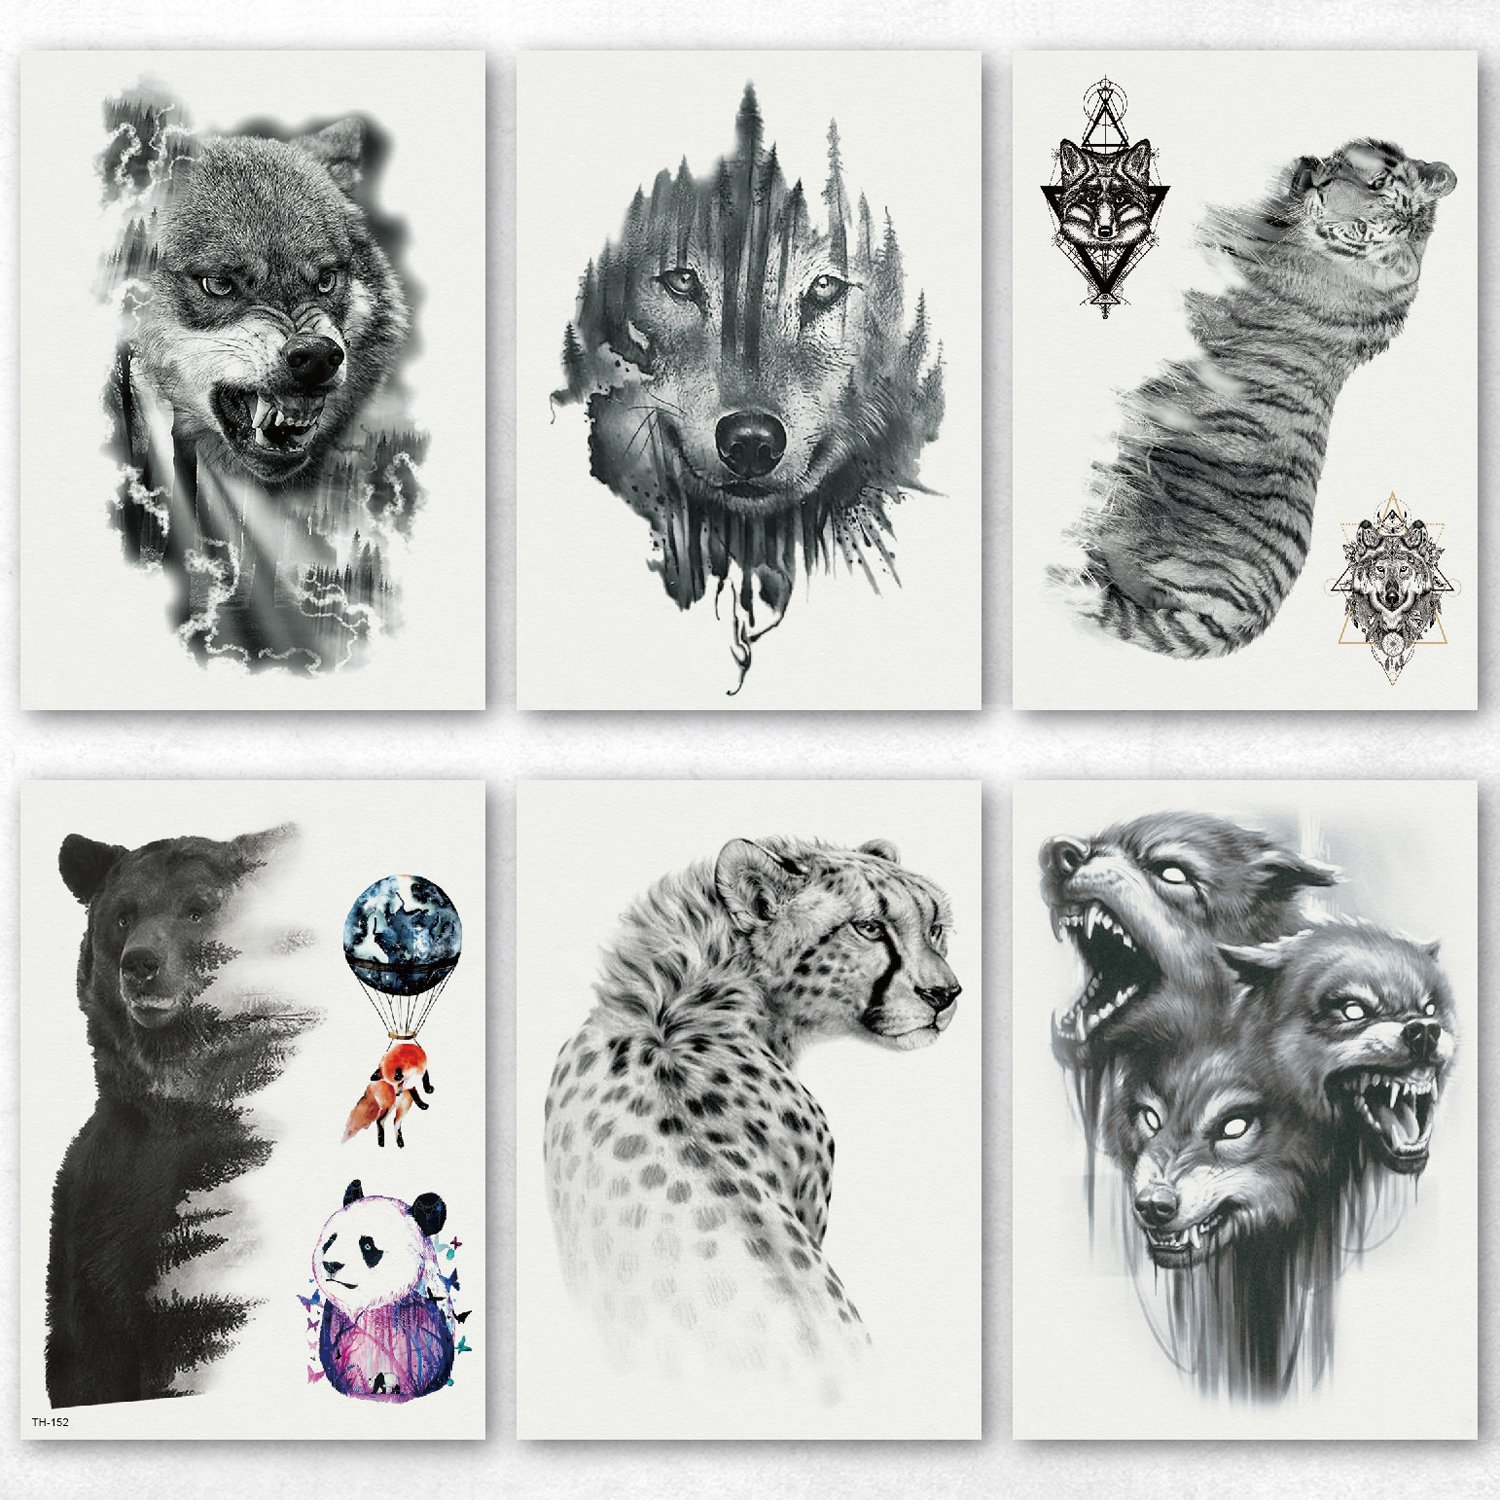 50d164954 Amazon.com: Kotbs 6 Sheets Large Temporary Tattoo Black Strong Wolf Tiger  Tattoo Sticker for Men Women Guys Waterproof Body Art Makeup Fake Tattoos:  Beauty